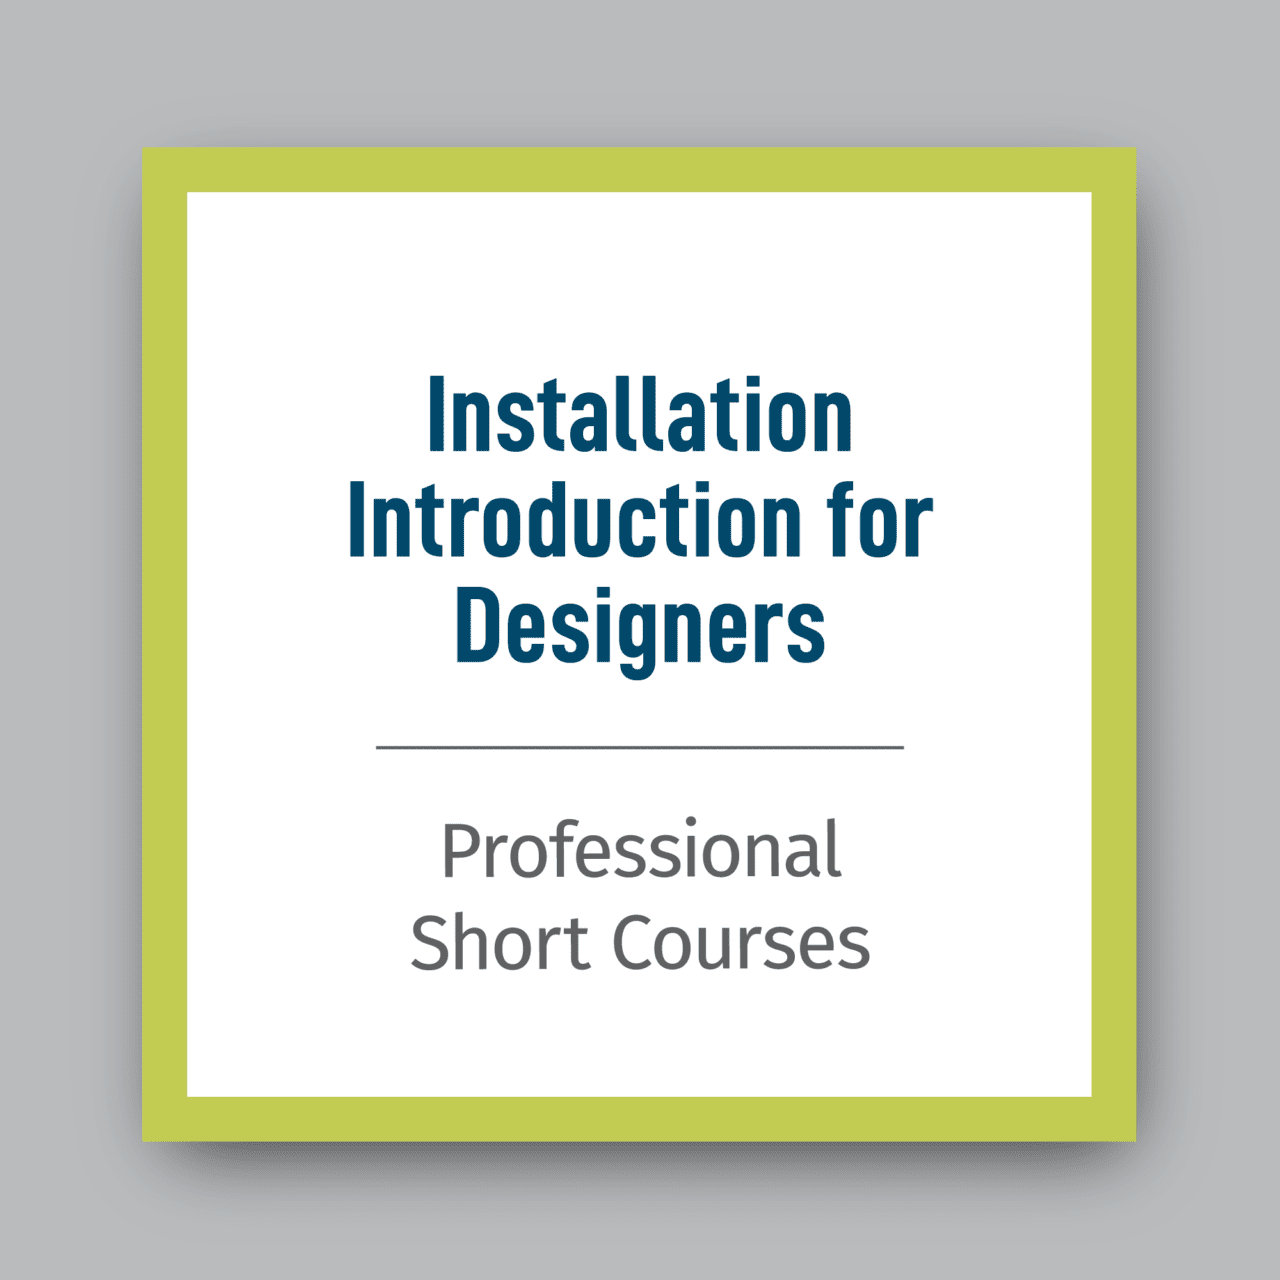 Installation-Introduction-for-Designers